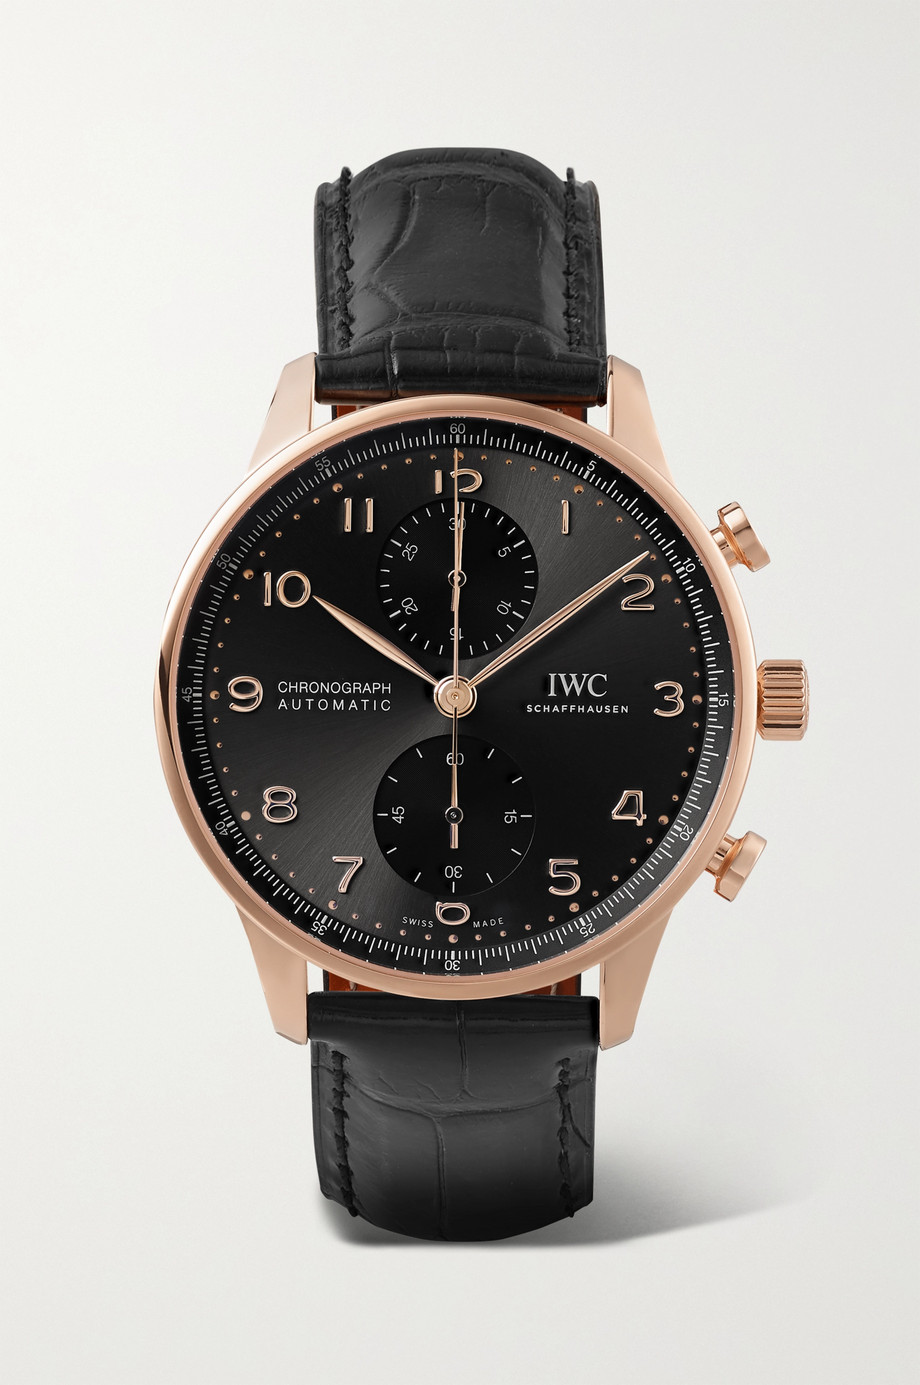 IWC SCHAFFHAUSEN Portugieser Automatic Chronograph 41mm 18-karat gold and alligator watch